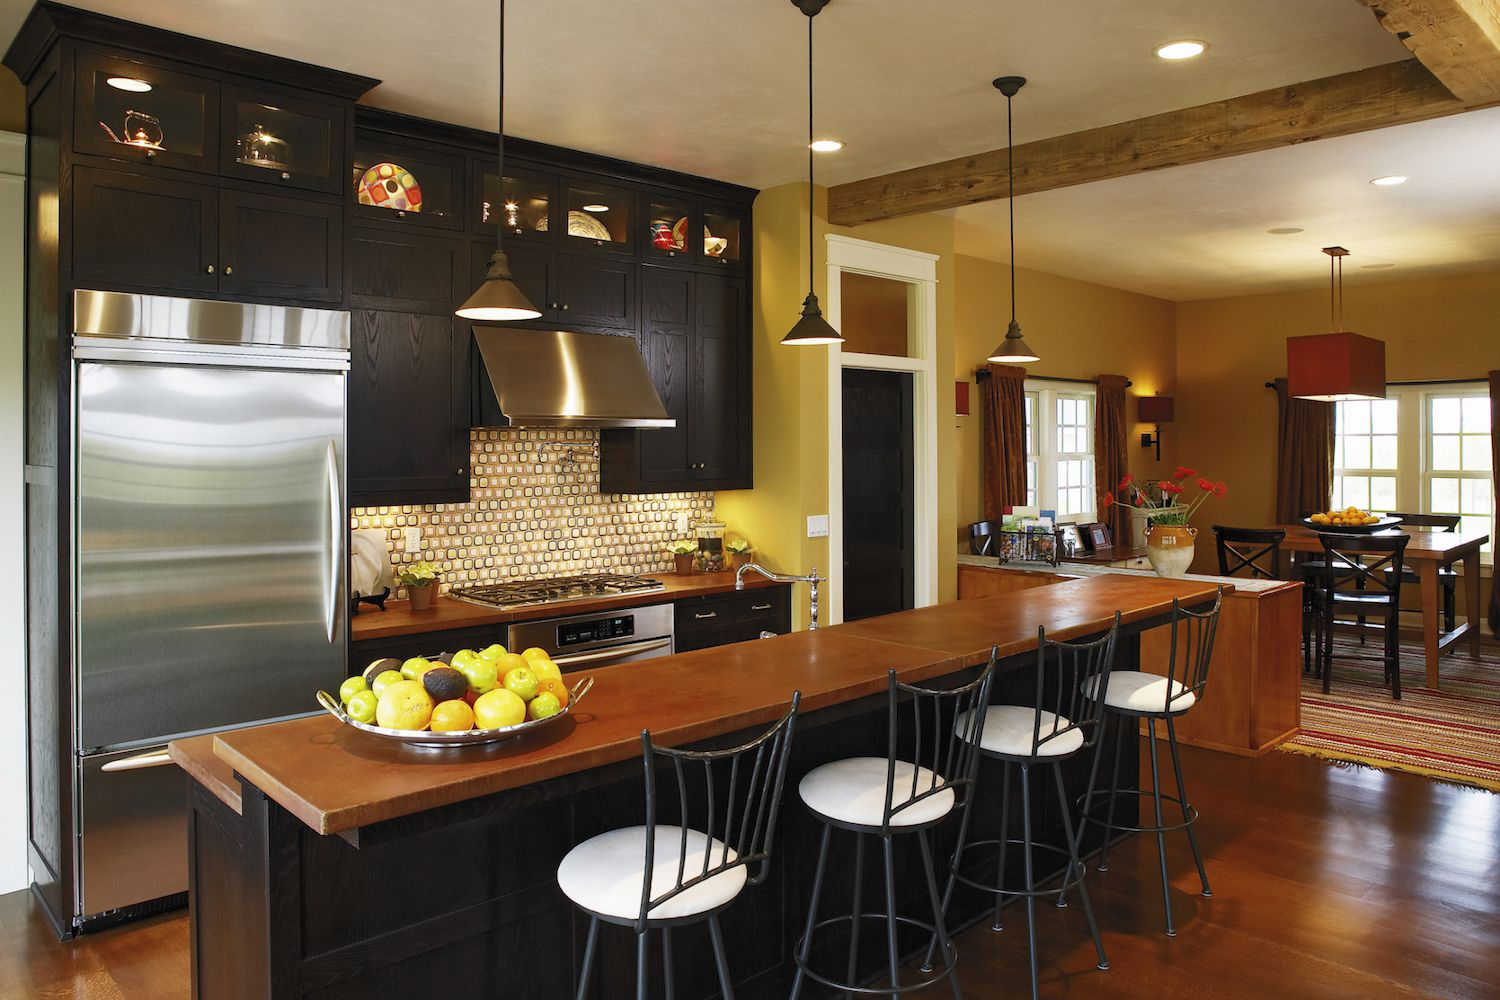 7 Design Mistakes To Avoid In Your Hall: Kitchen Makeover Mistakes To Avoid This Season